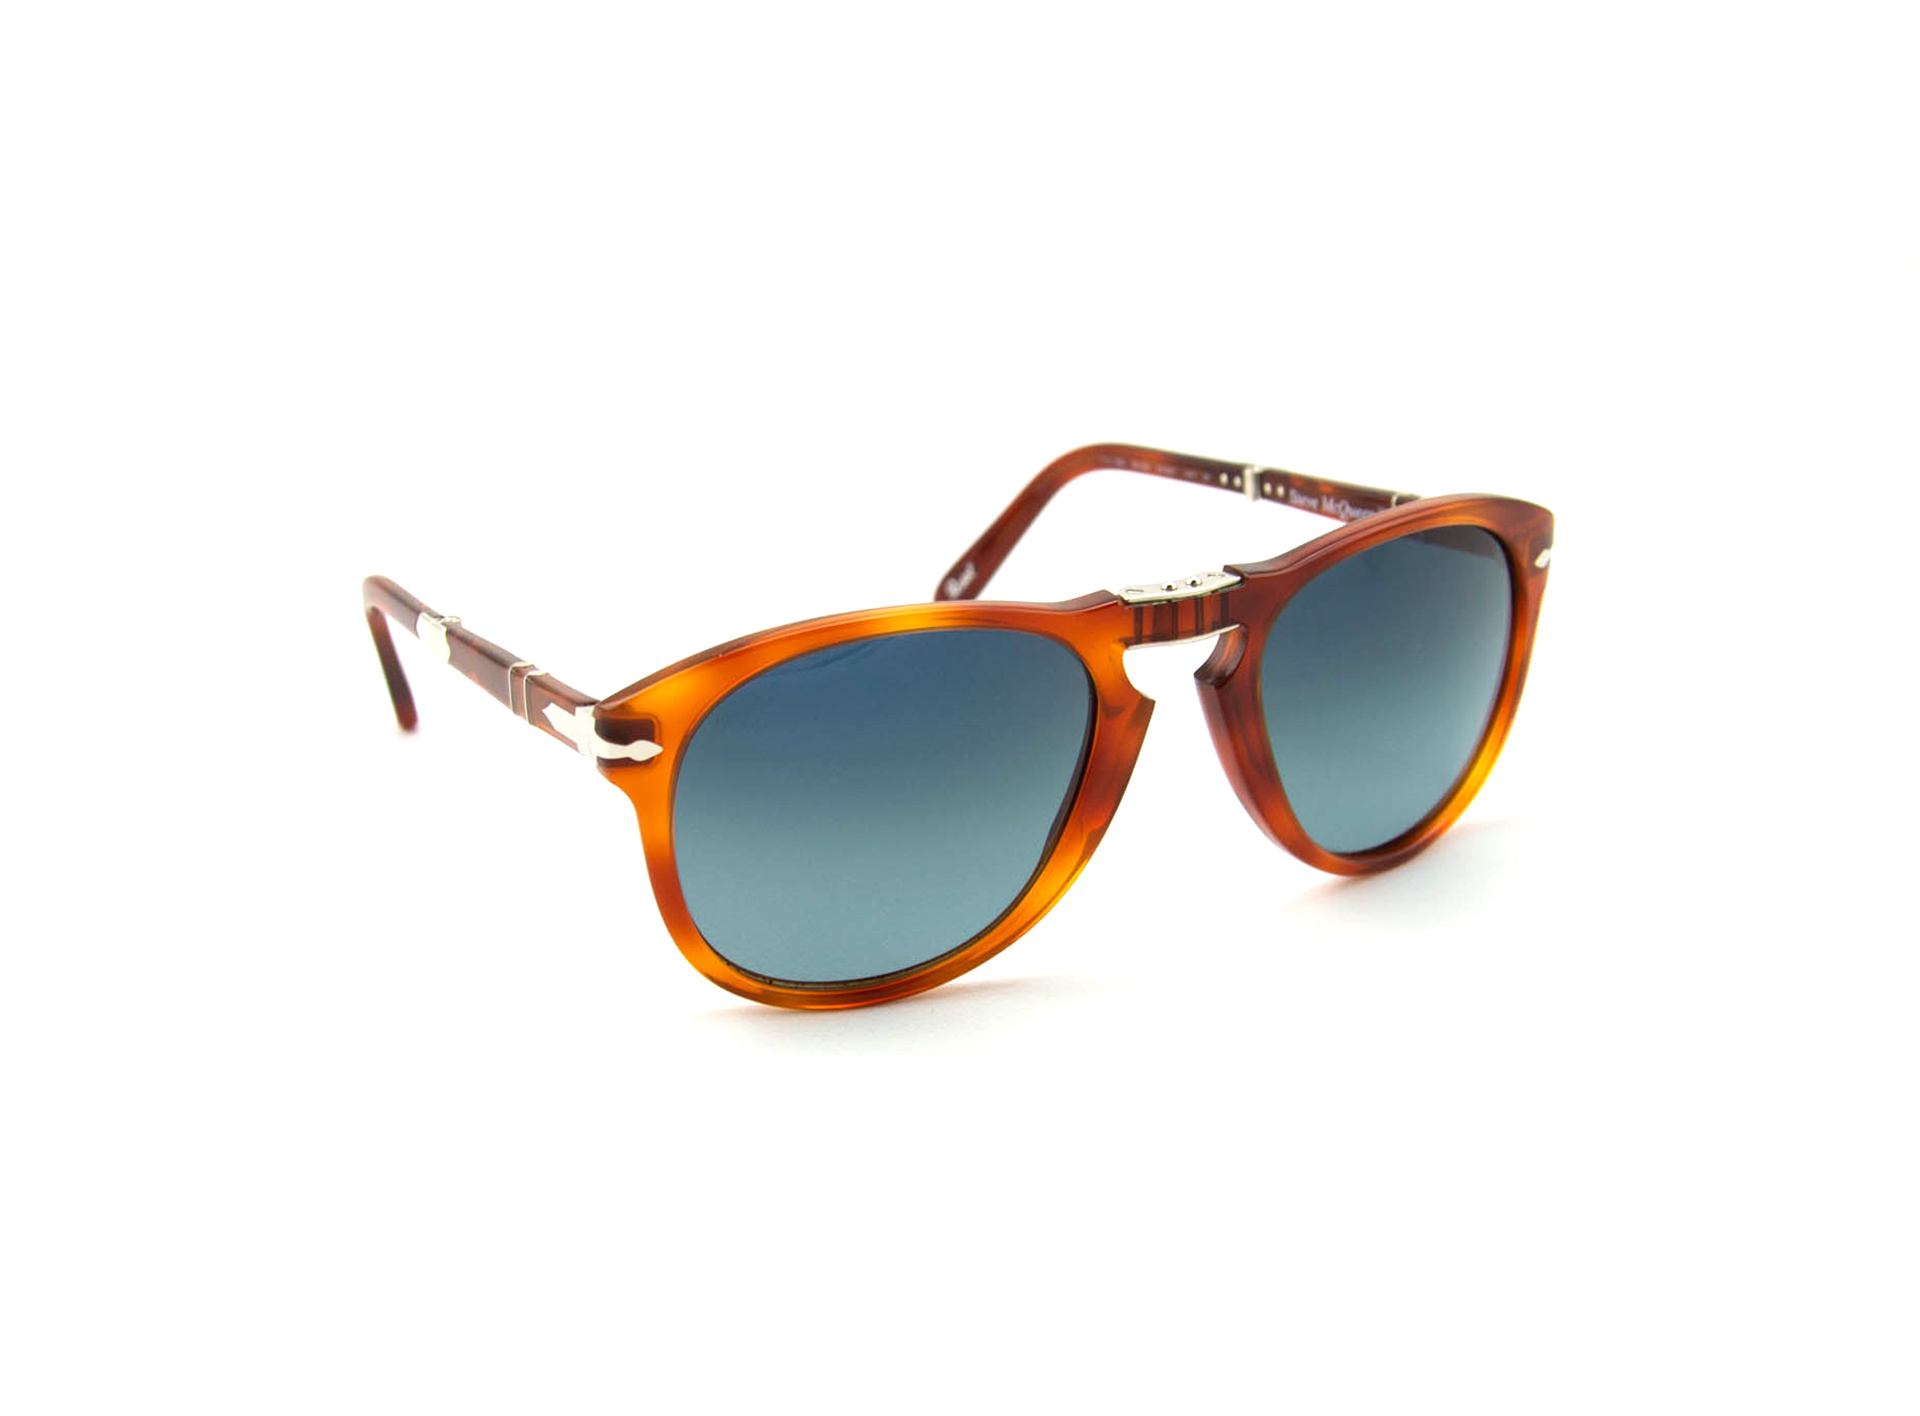 Occhiali da sole Made in Italy Persol